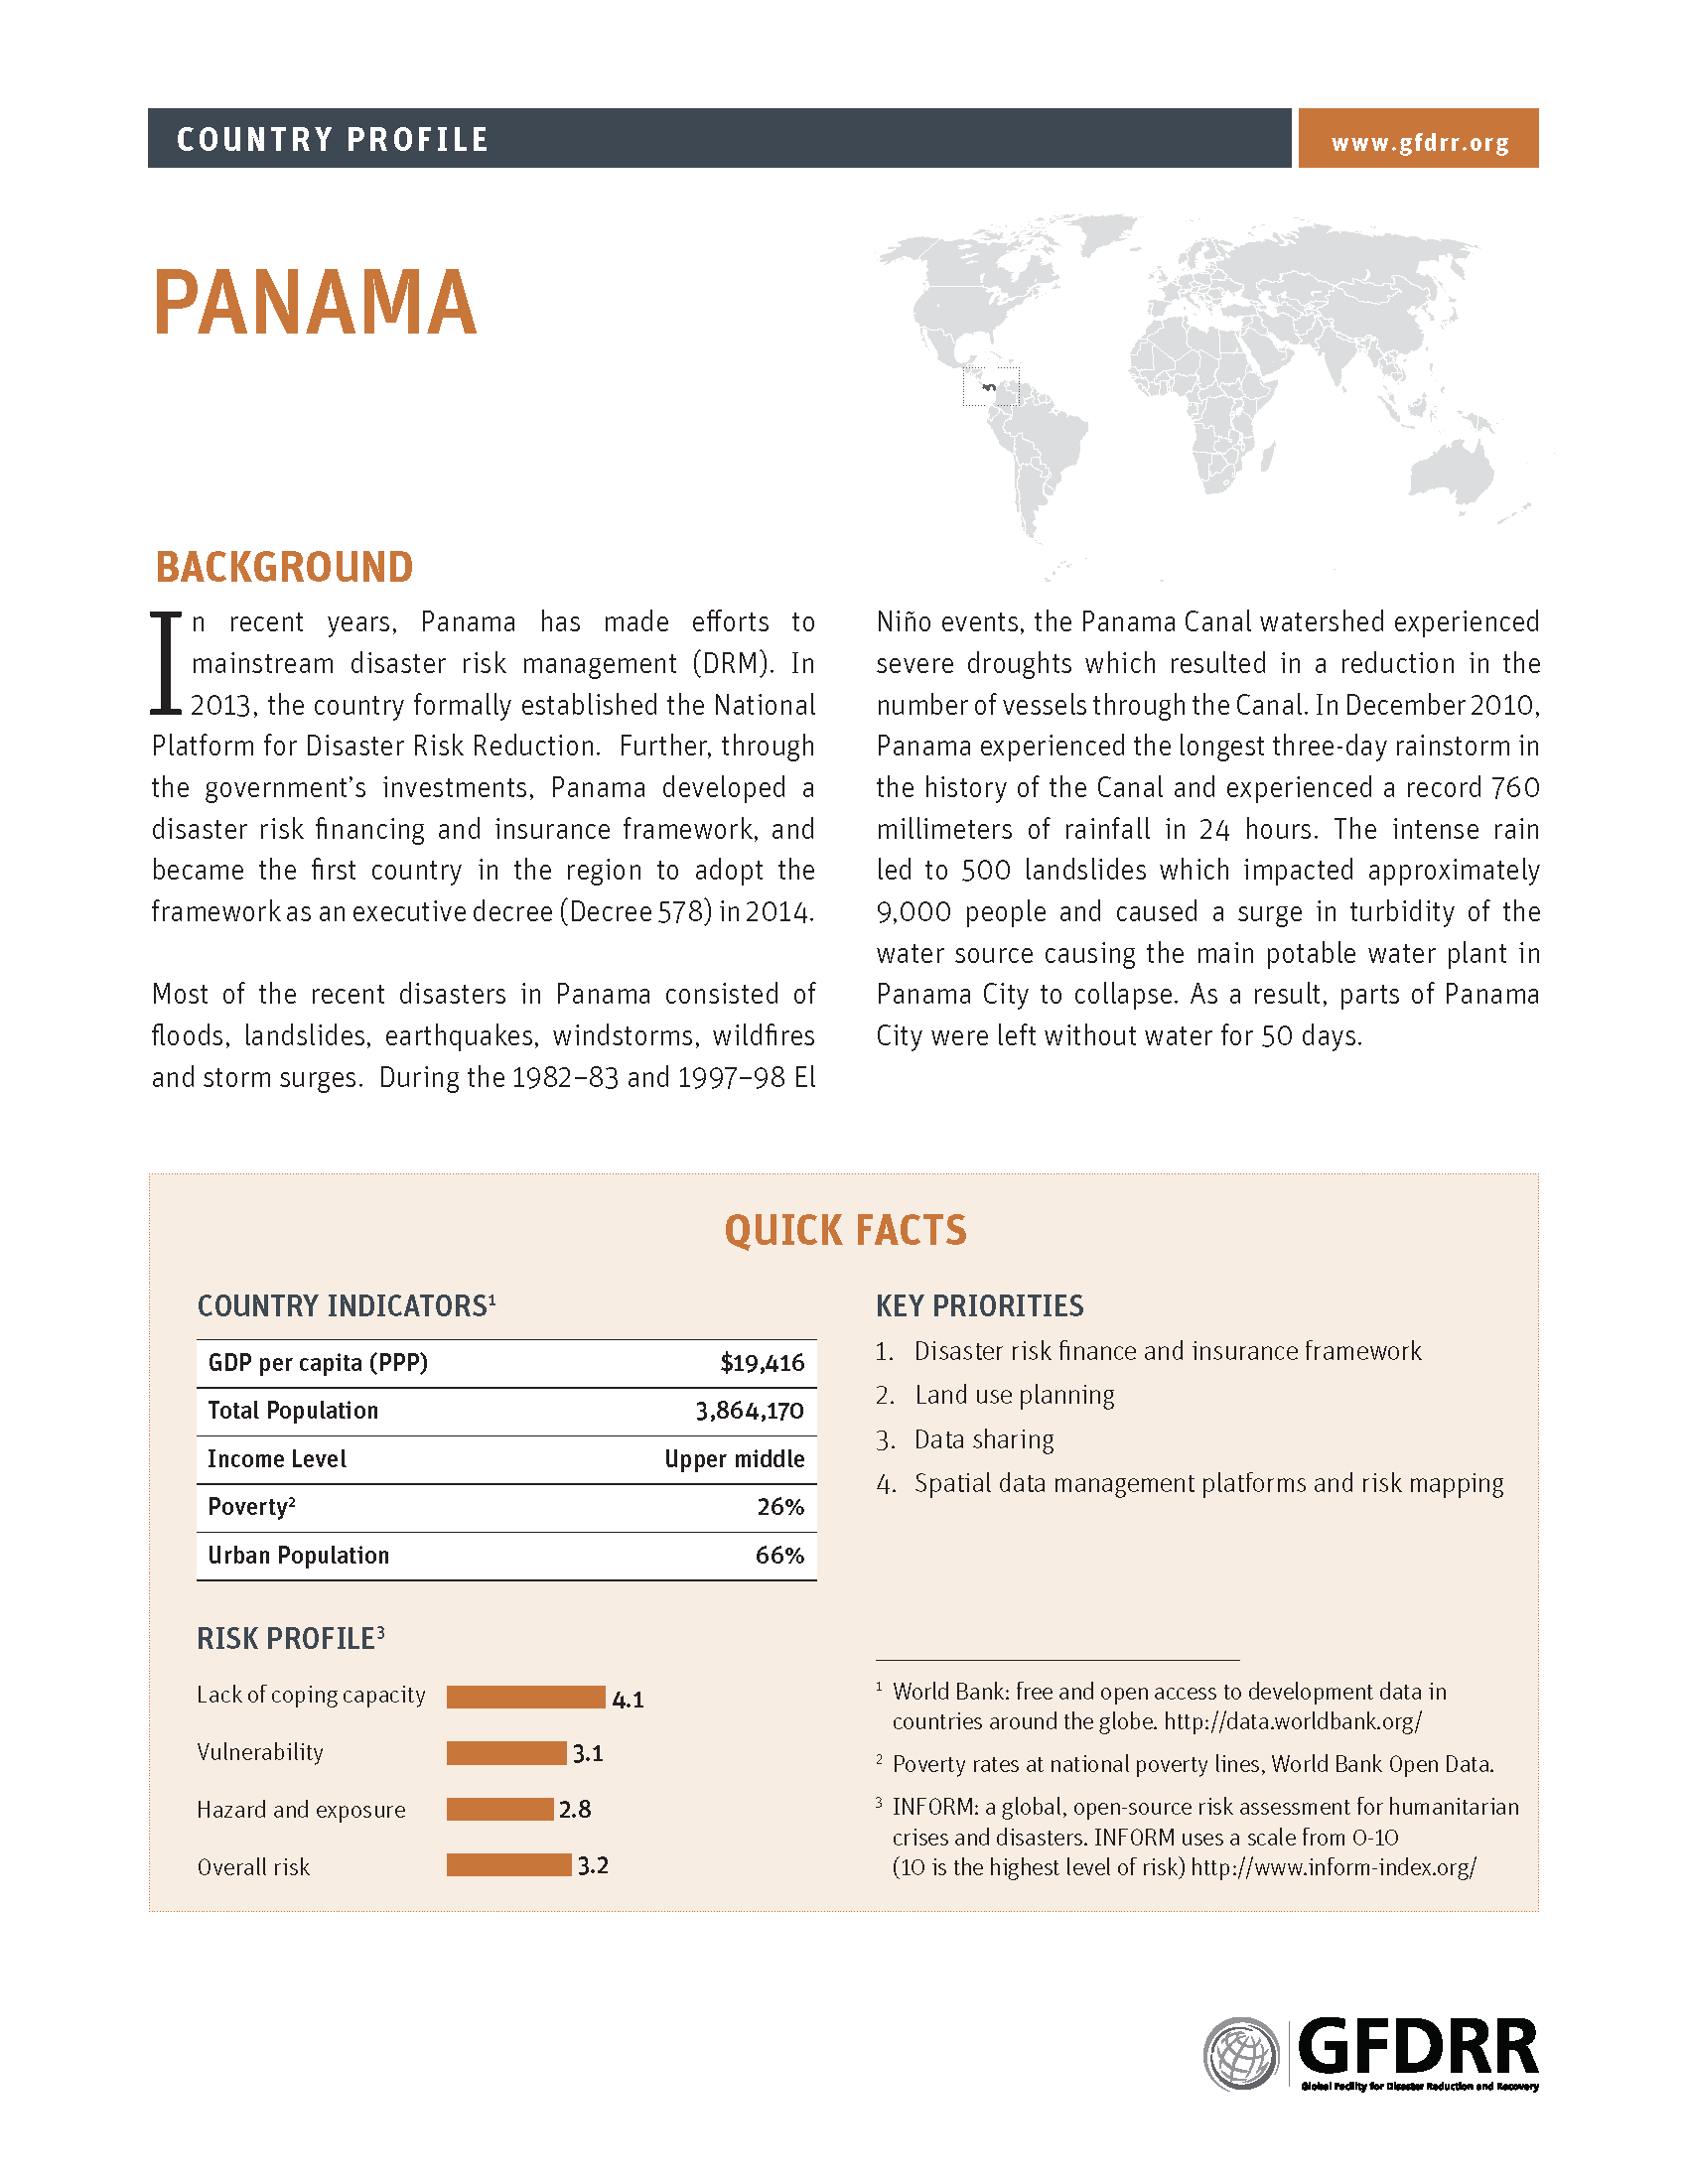 Country Profile: Panama